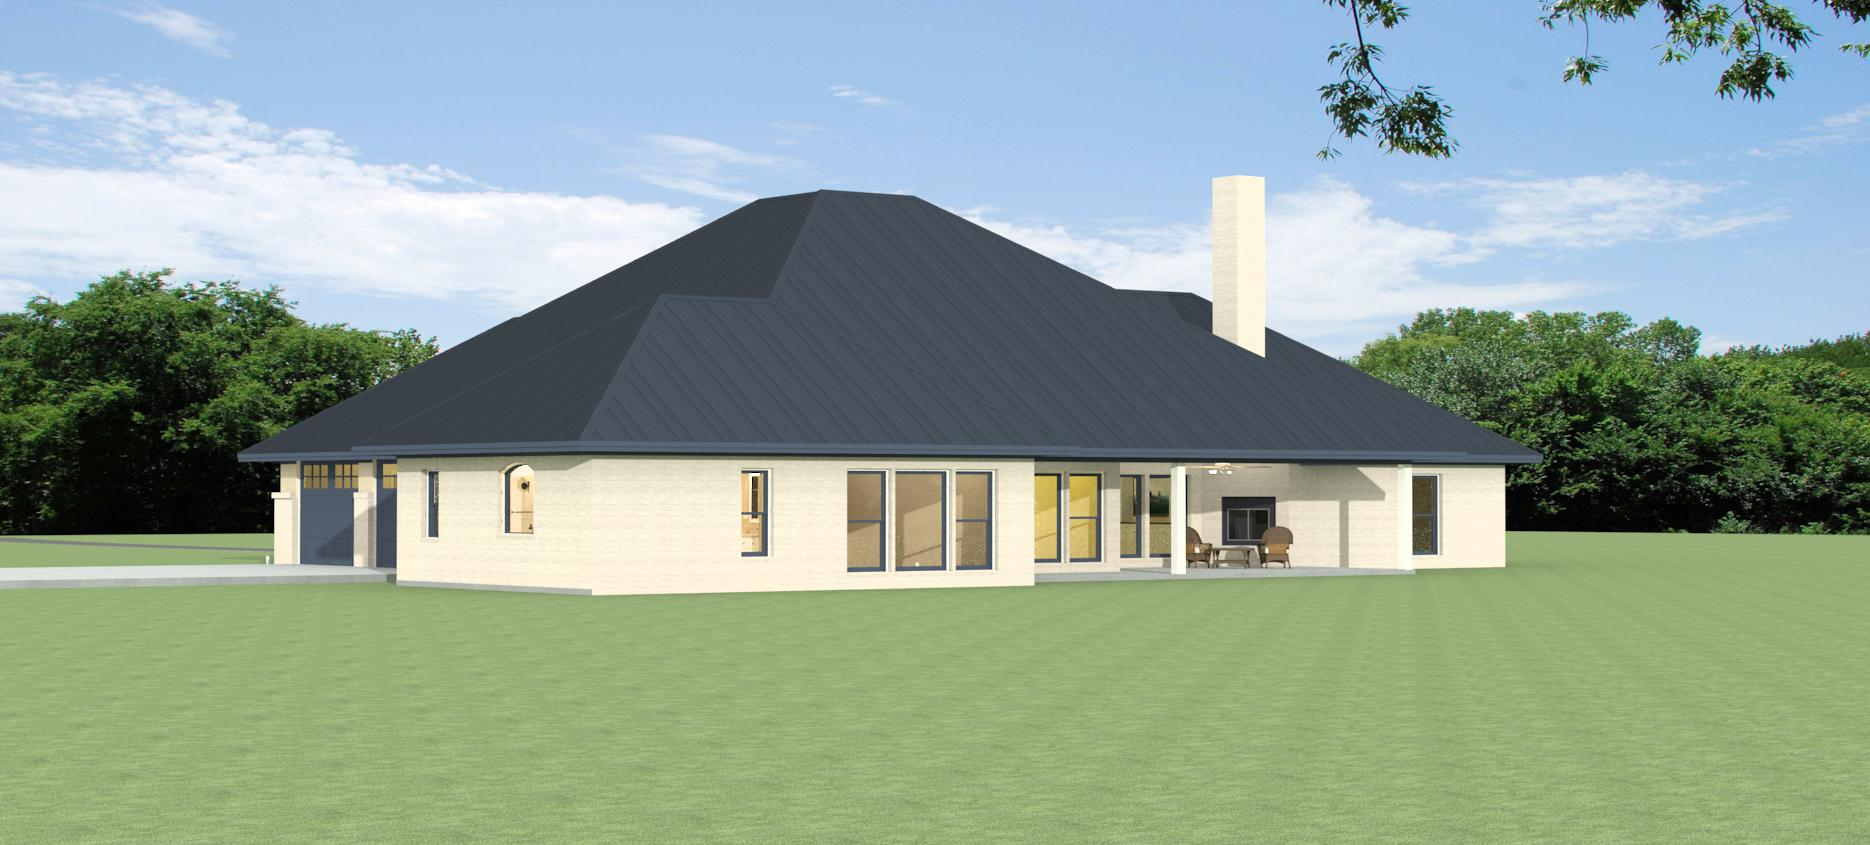 s3226r | texas house plans - over 700 proven home designs online